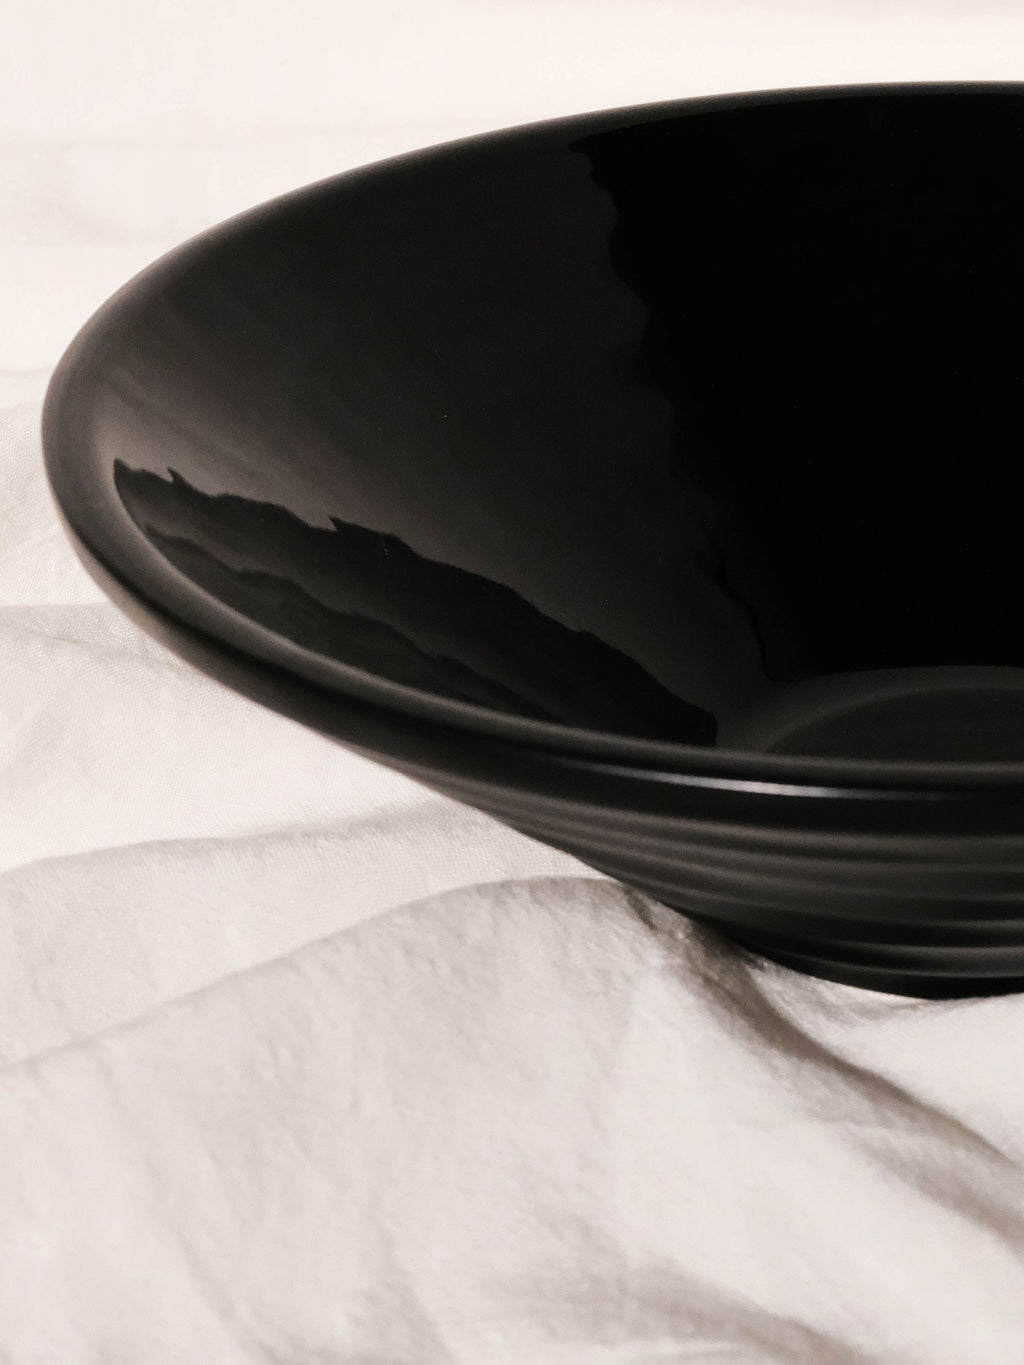 SESSTRA FORMA-2 CERAMIC BOWL